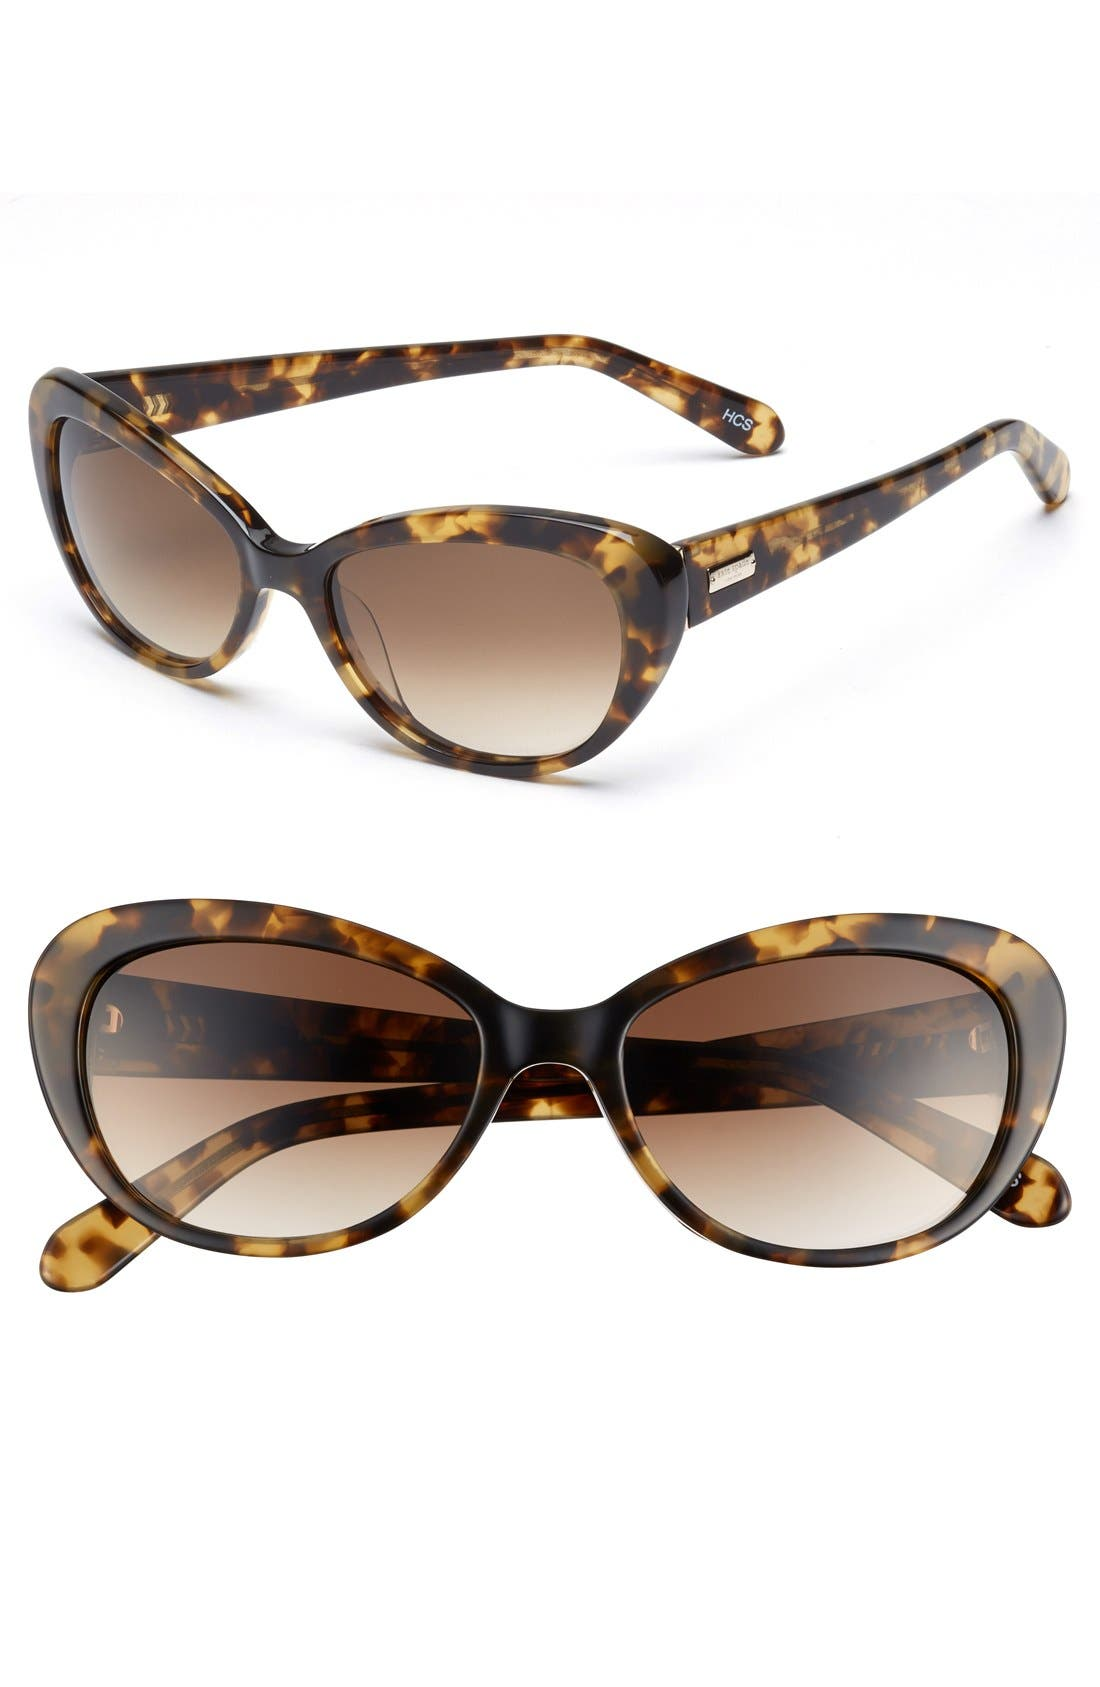 Main Image - kate spade new york 'inga' cat eye sunglasses